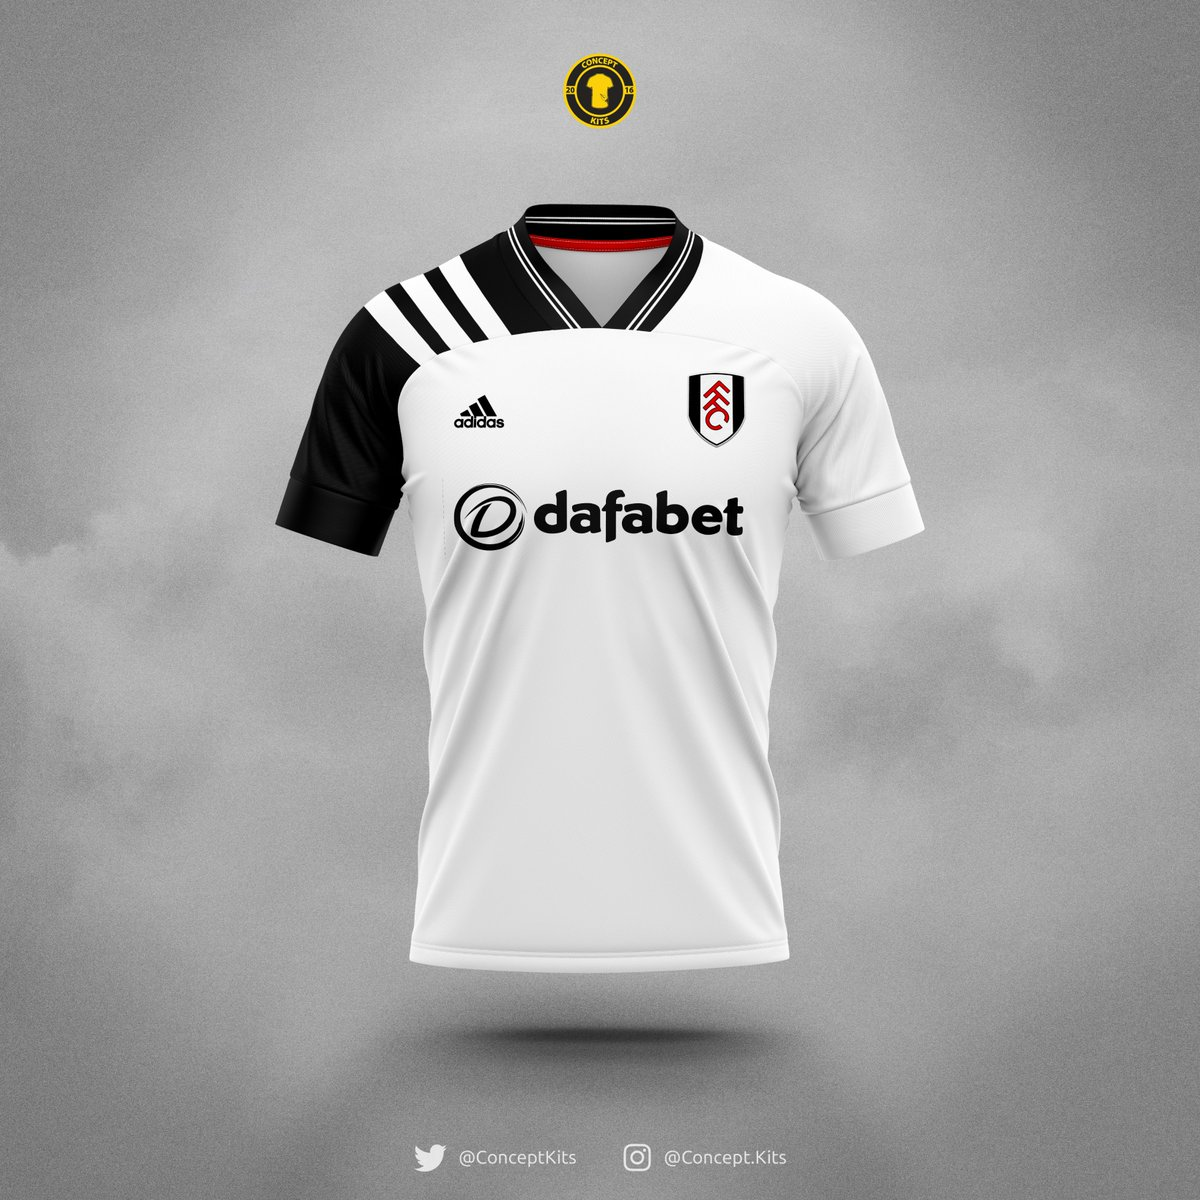 Fulham Football Club home, away and third kit concepts for the 2020/21 season.  #FFC #Fulham #FulhamFC #Cottagers #Adidas #Design #EFL #KitConcept #CravenCottage #Londonpic.twitter.com/rMB5WtE8Yd